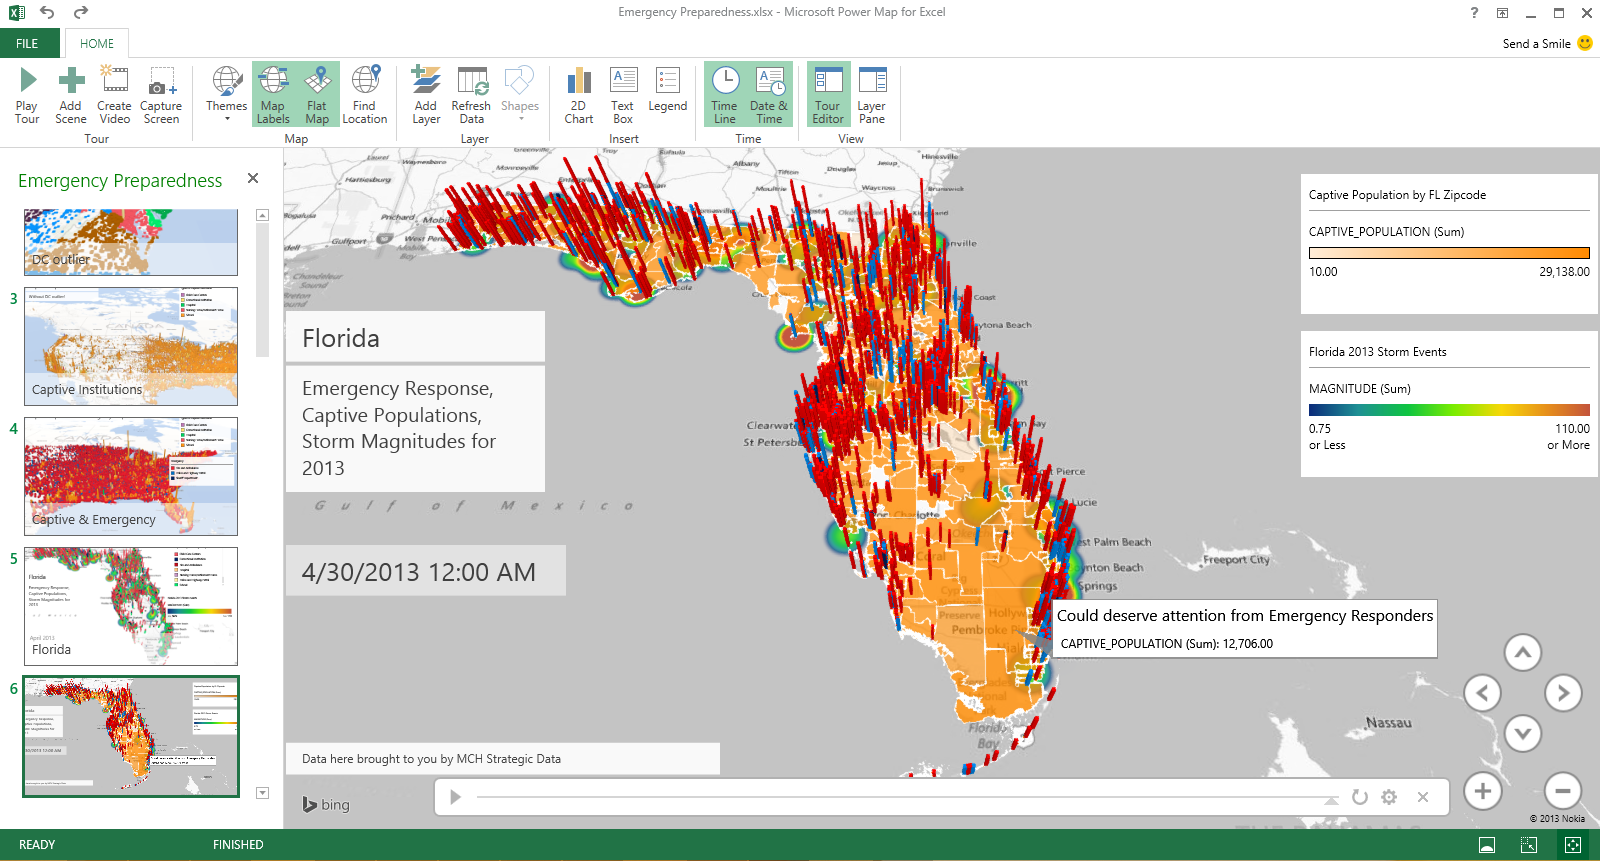 Ediblewildsus  Winning Power Map For Excel Now Generally Available Automatically Updated  With Foxy Power Map For Excel Now Generally Available Automatically Updated For Office  With Astonishing Excel M Also Solve In Excel In Addition Trip Planner Excel And Excel Deduplication As Well As Cagr On Excel Additionally Excel Math Answers From Powerbimicrosoftcom With Ediblewildsus  Foxy Power Map For Excel Now Generally Available Automatically Updated  With Astonishing Power Map For Excel Now Generally Available Automatically Updated For Office  And Winning Excel M Also Solve In Excel In Addition Trip Planner Excel From Powerbimicrosoftcom